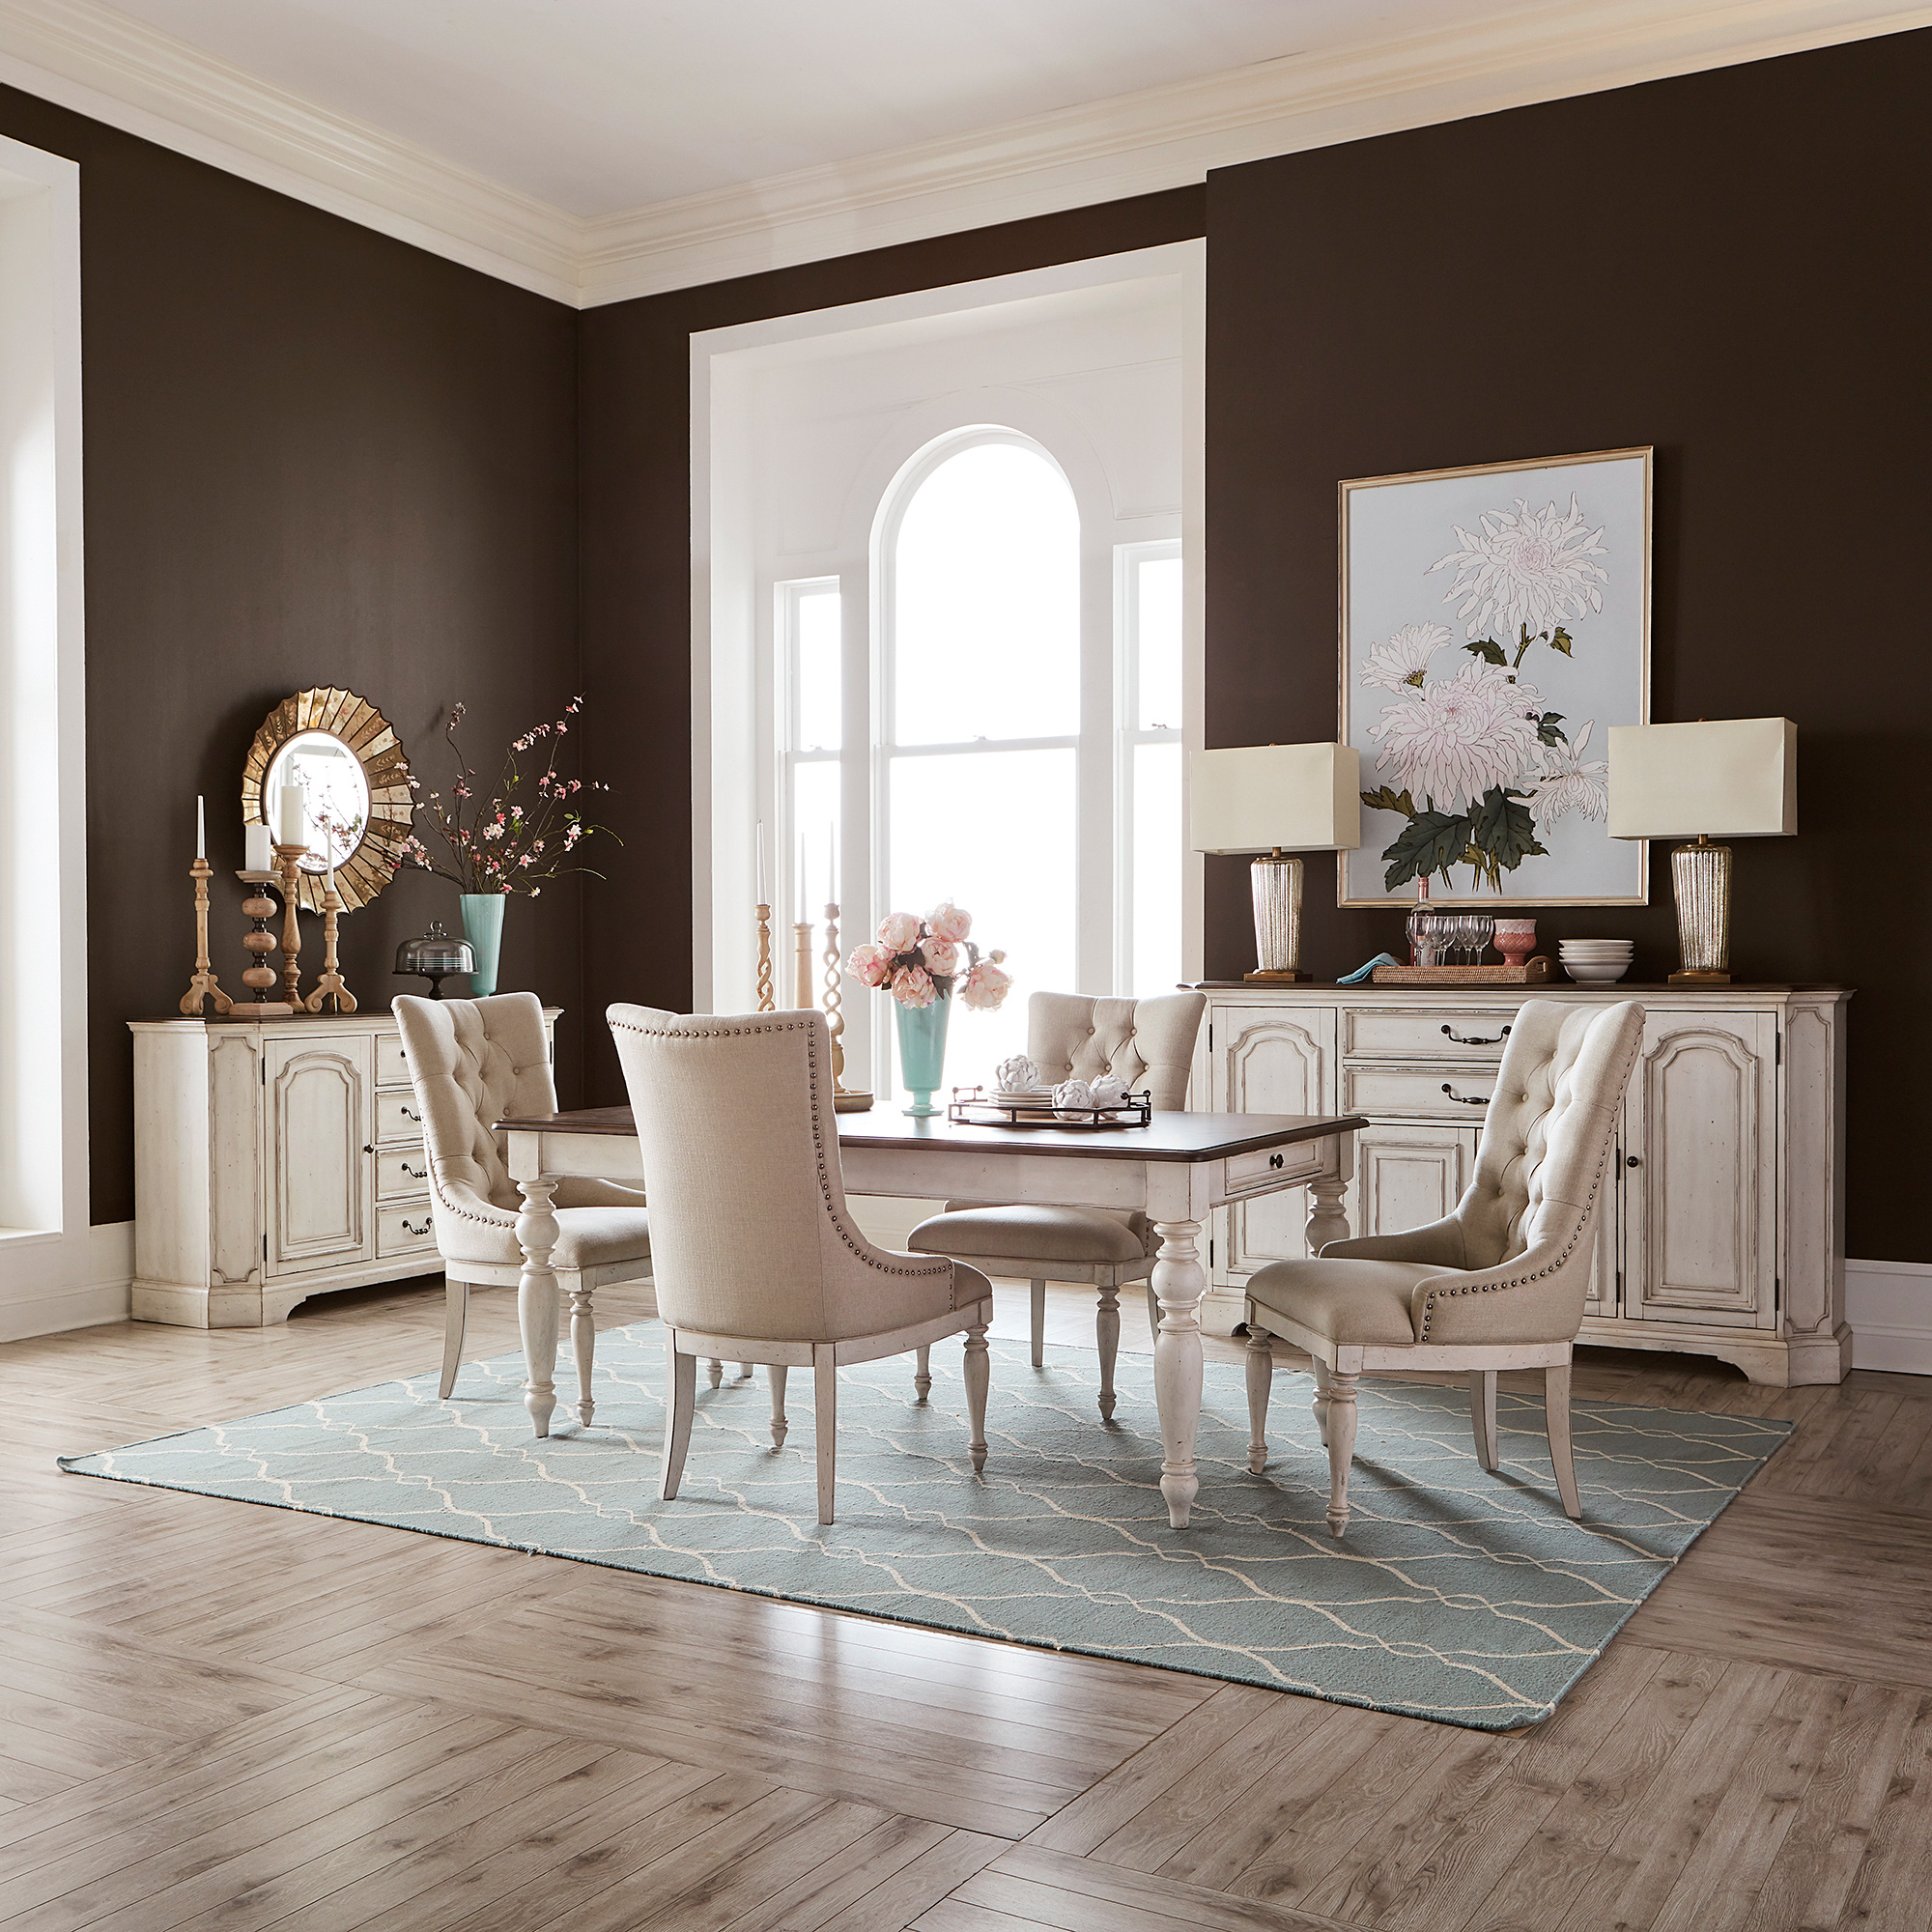 Liberty Furniture | Abbey Road White 5 Piece Upholstered Dining Set